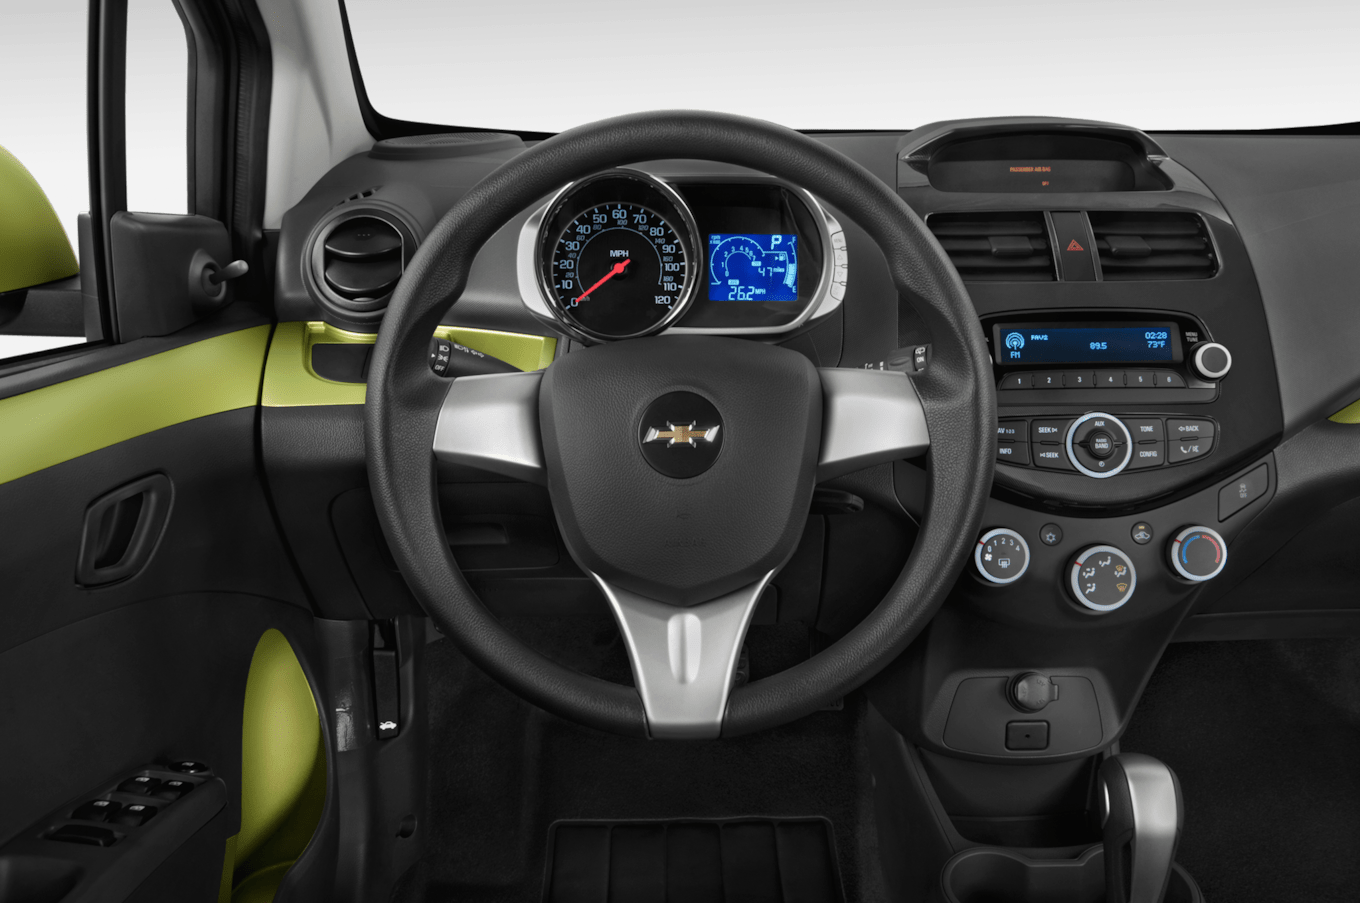 2012 Chevrolet Sonic Wiring Diagram 2015 Chevrolet Spark Reviews Research Spark Prices